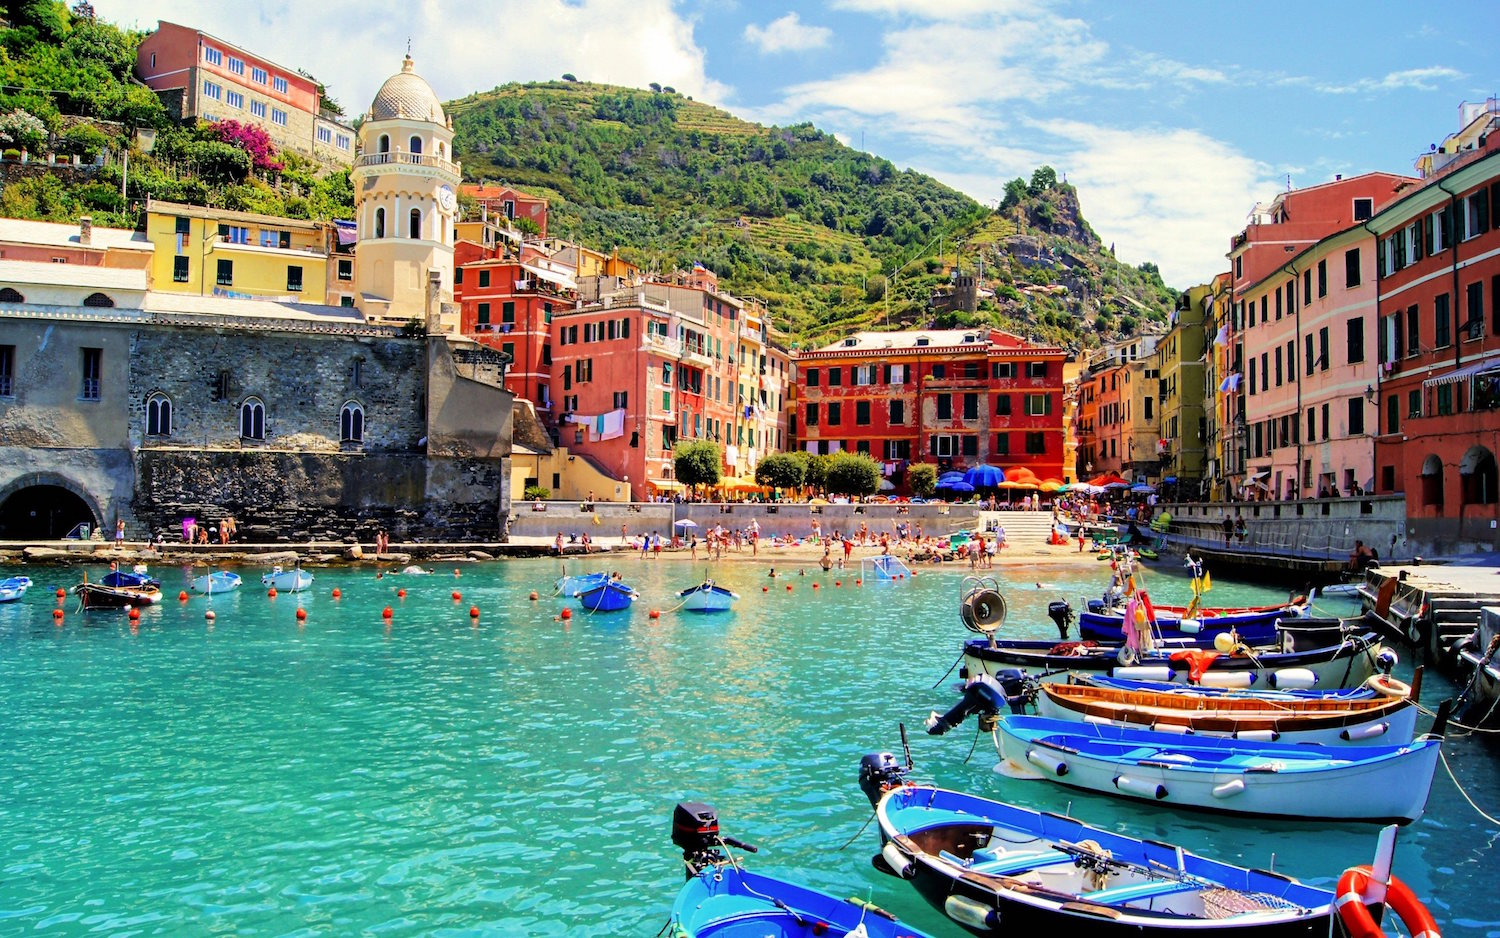 Vernazza port boats